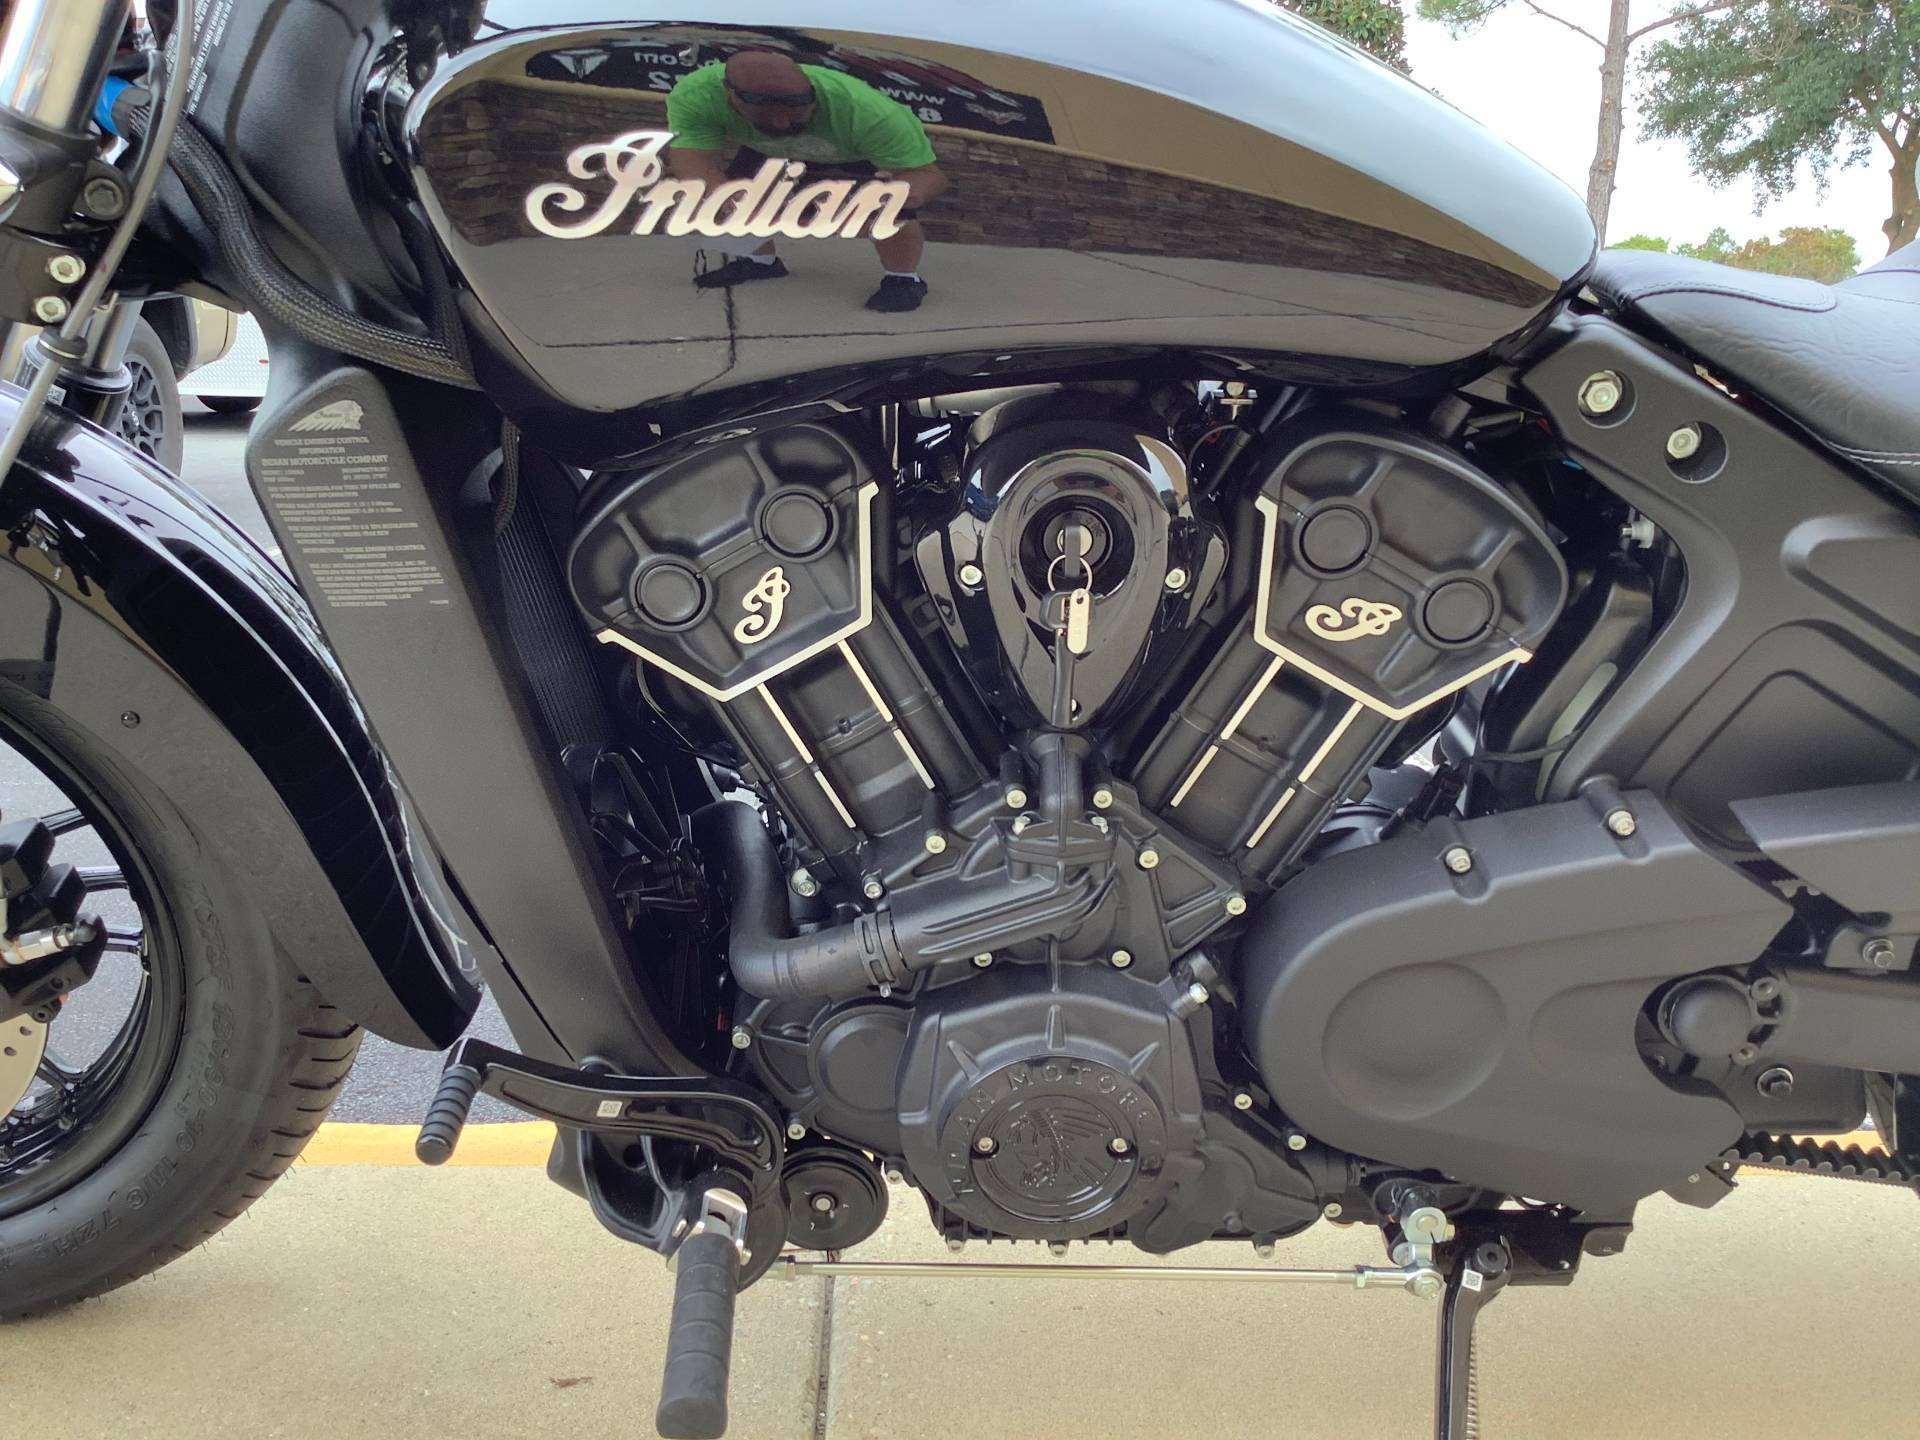 2021 Indian SCOUT 60 in Panama City Beach, Florida - Photo 13